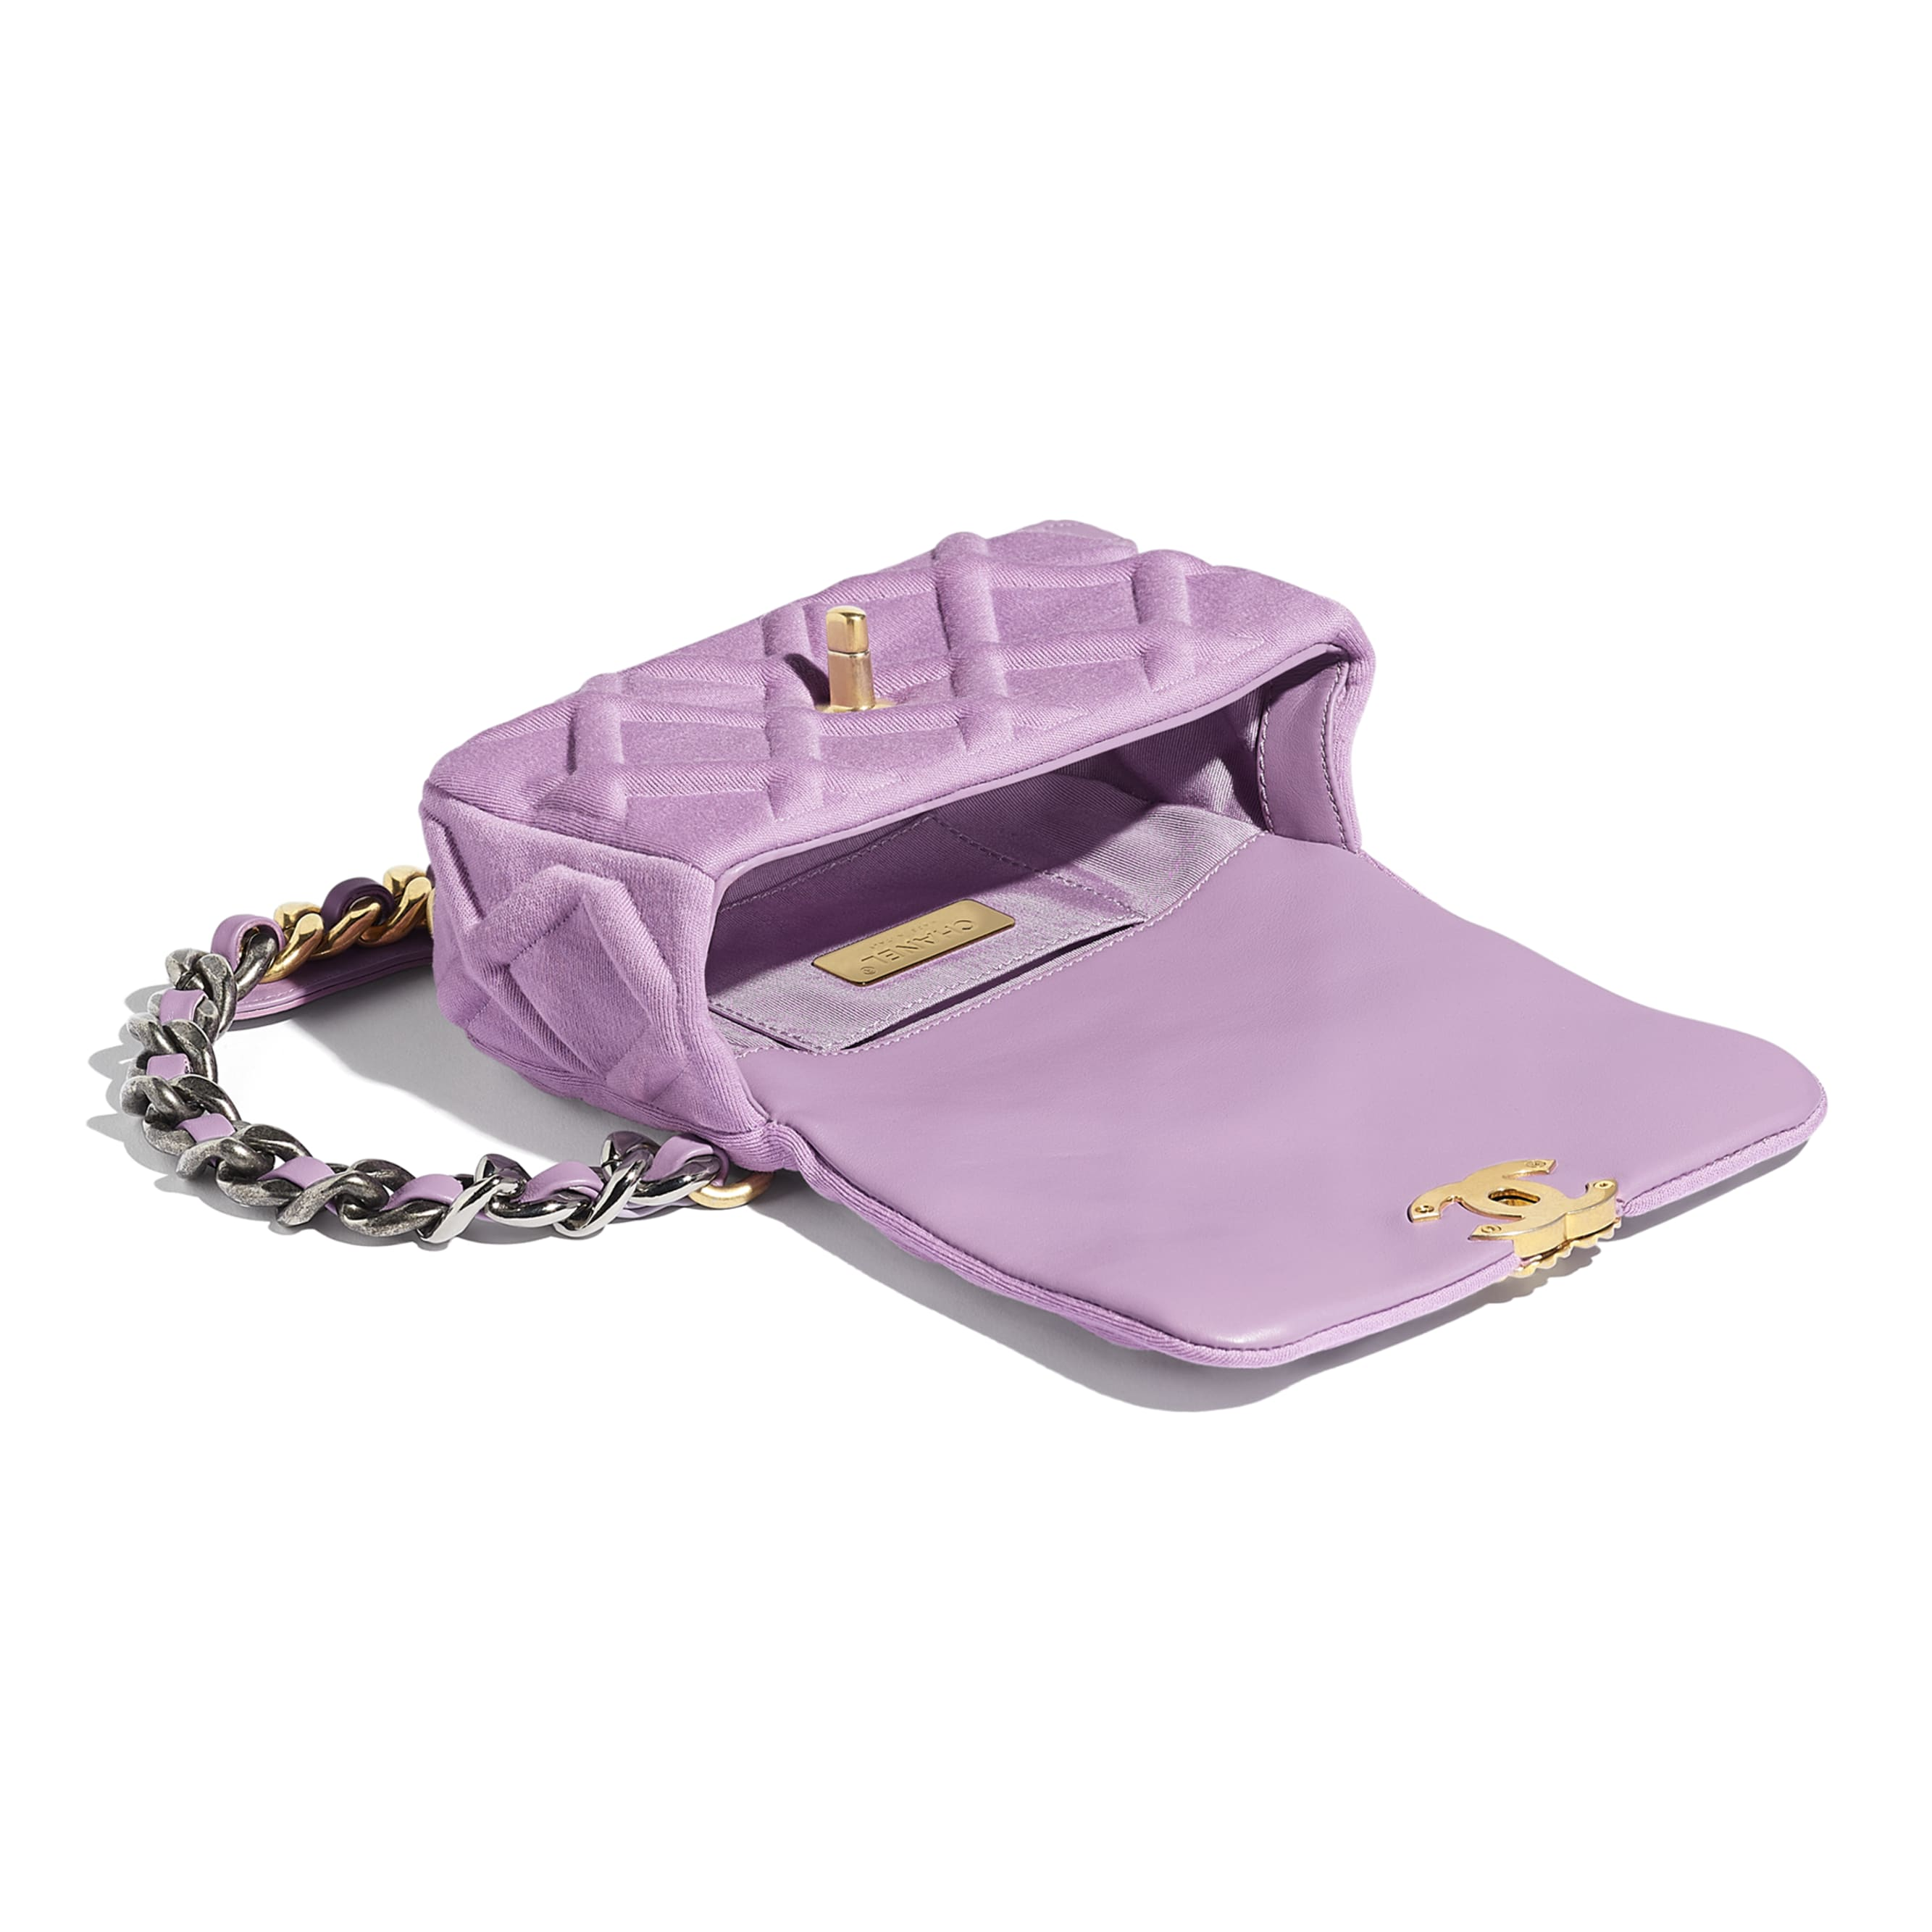 CHANEL 19 Waist Bag - Mauve - Jersey, Gold-Tone, Silver-Tone & Ruthenium-Finish Metal - Other view - see standard sized version